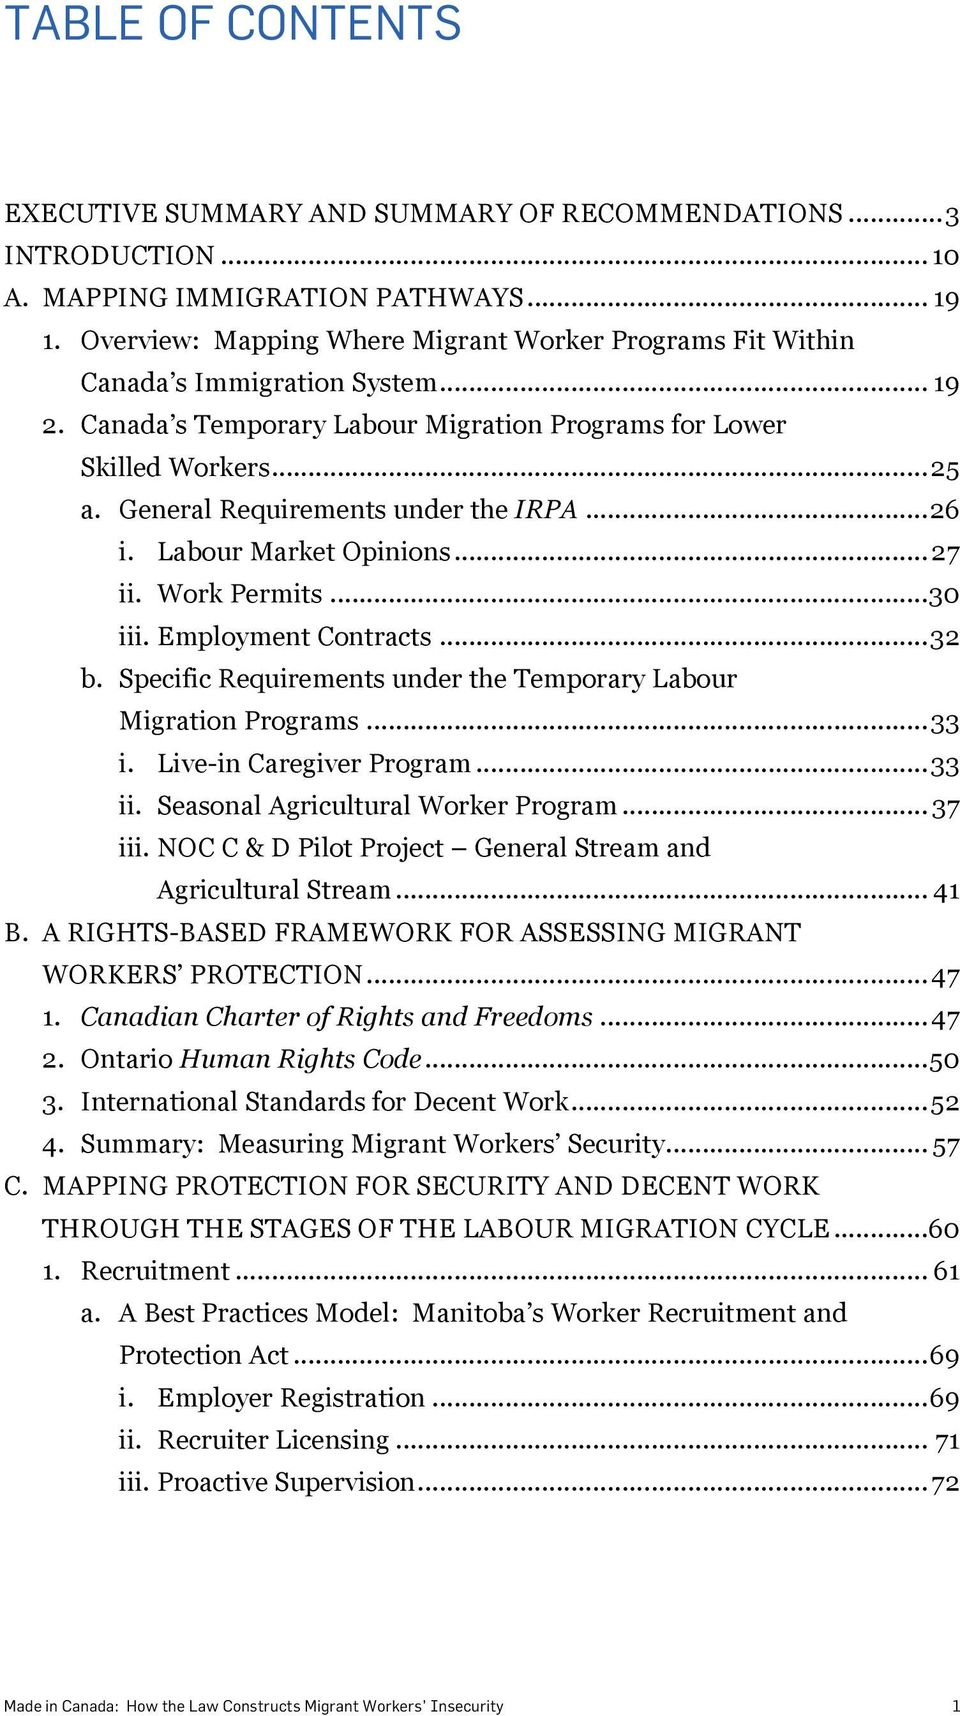 !employment Contracts...32! b.! Specific Requirements under the Temporary Labour Migration Programs...33! i.! Live-in Caregiver Program...33! ii.! Seasonal Agricultural Worker Program... 37! iii.